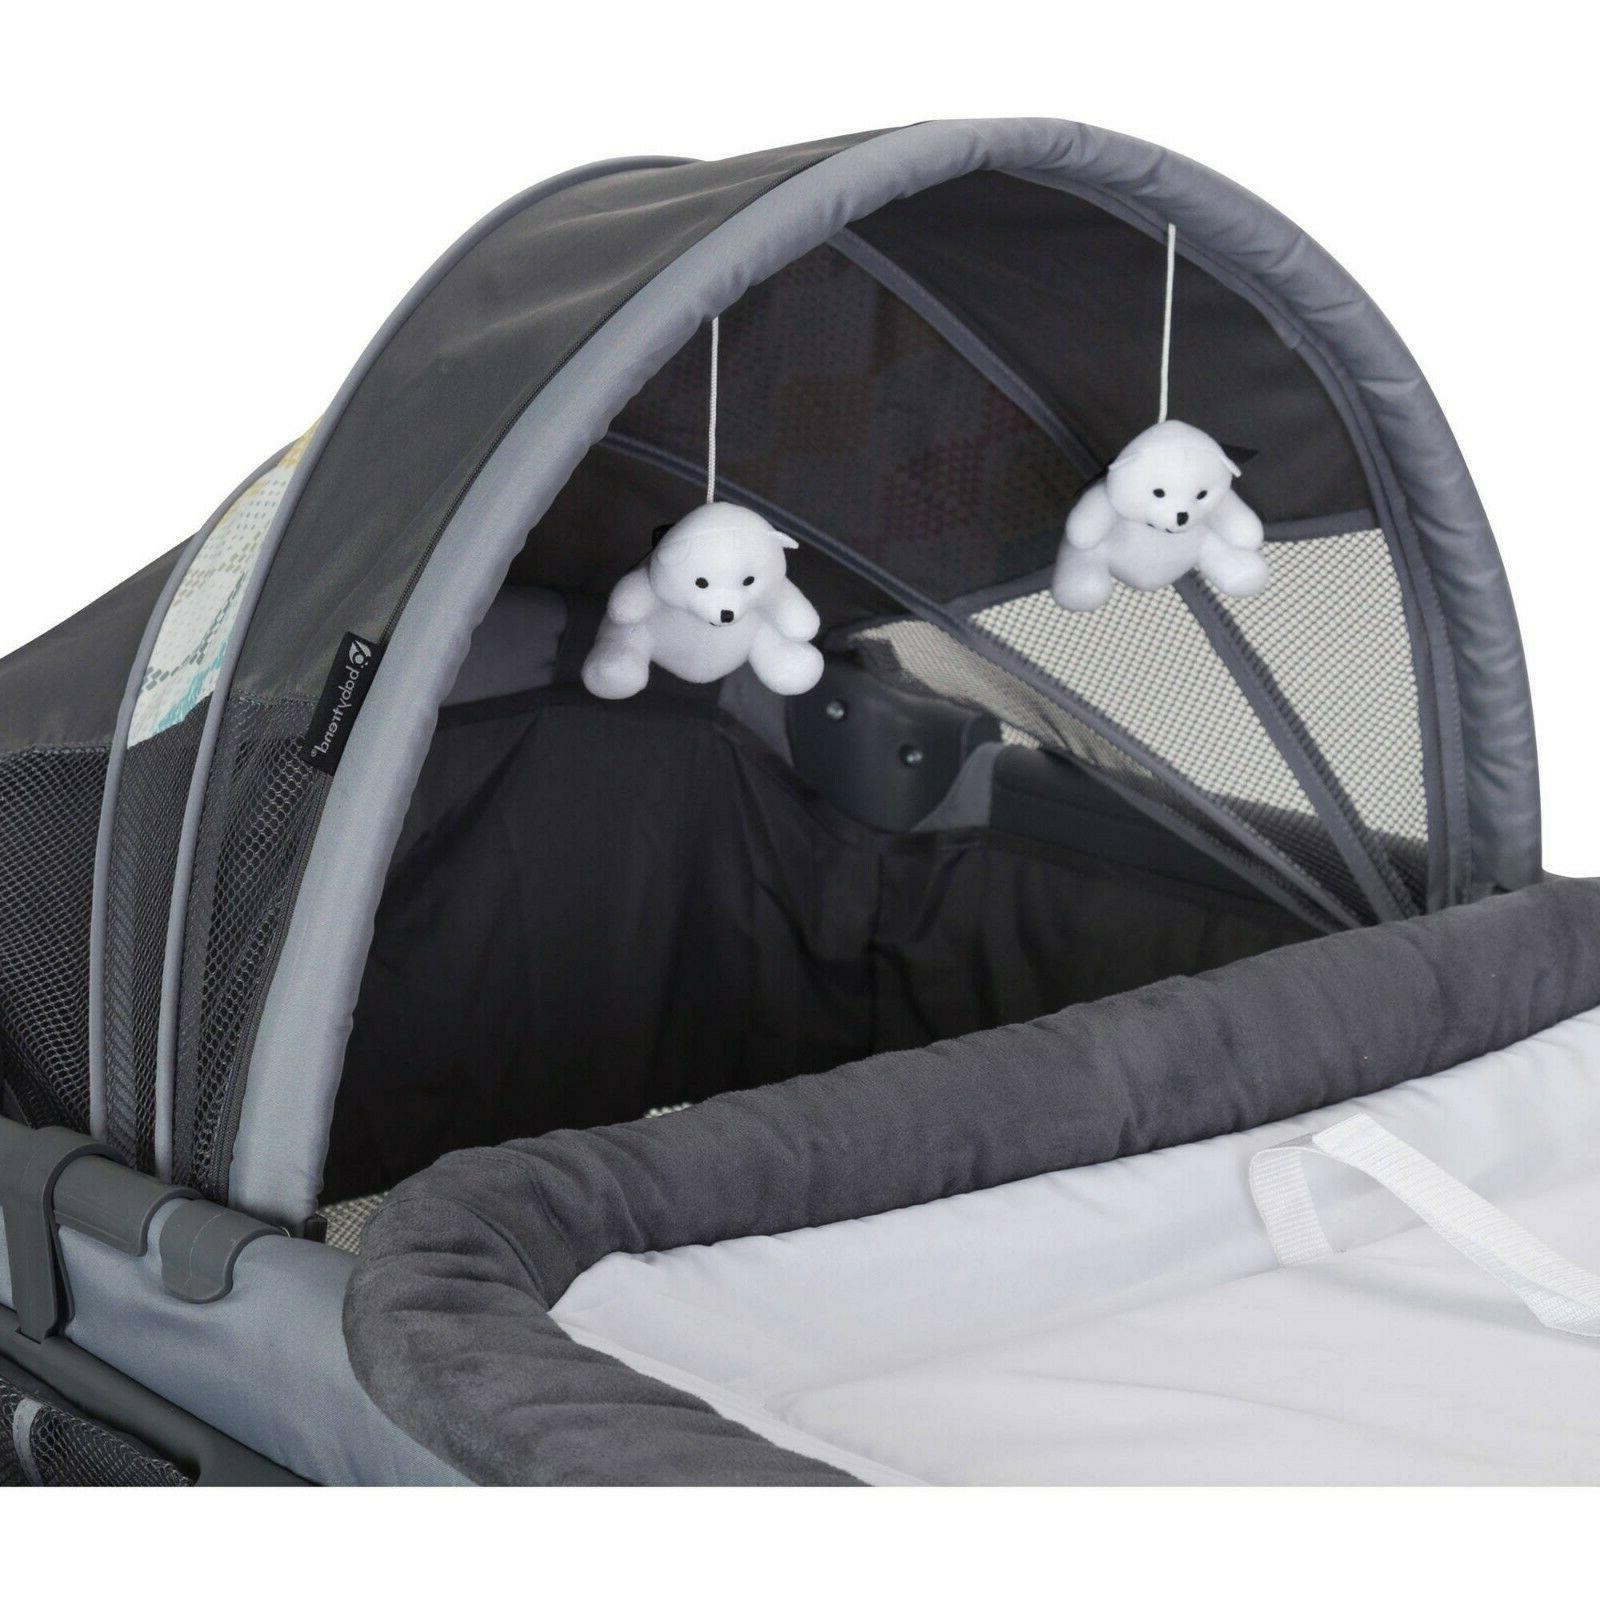 Baby Deluxe II Nursery Center Cot Crib Bassinet